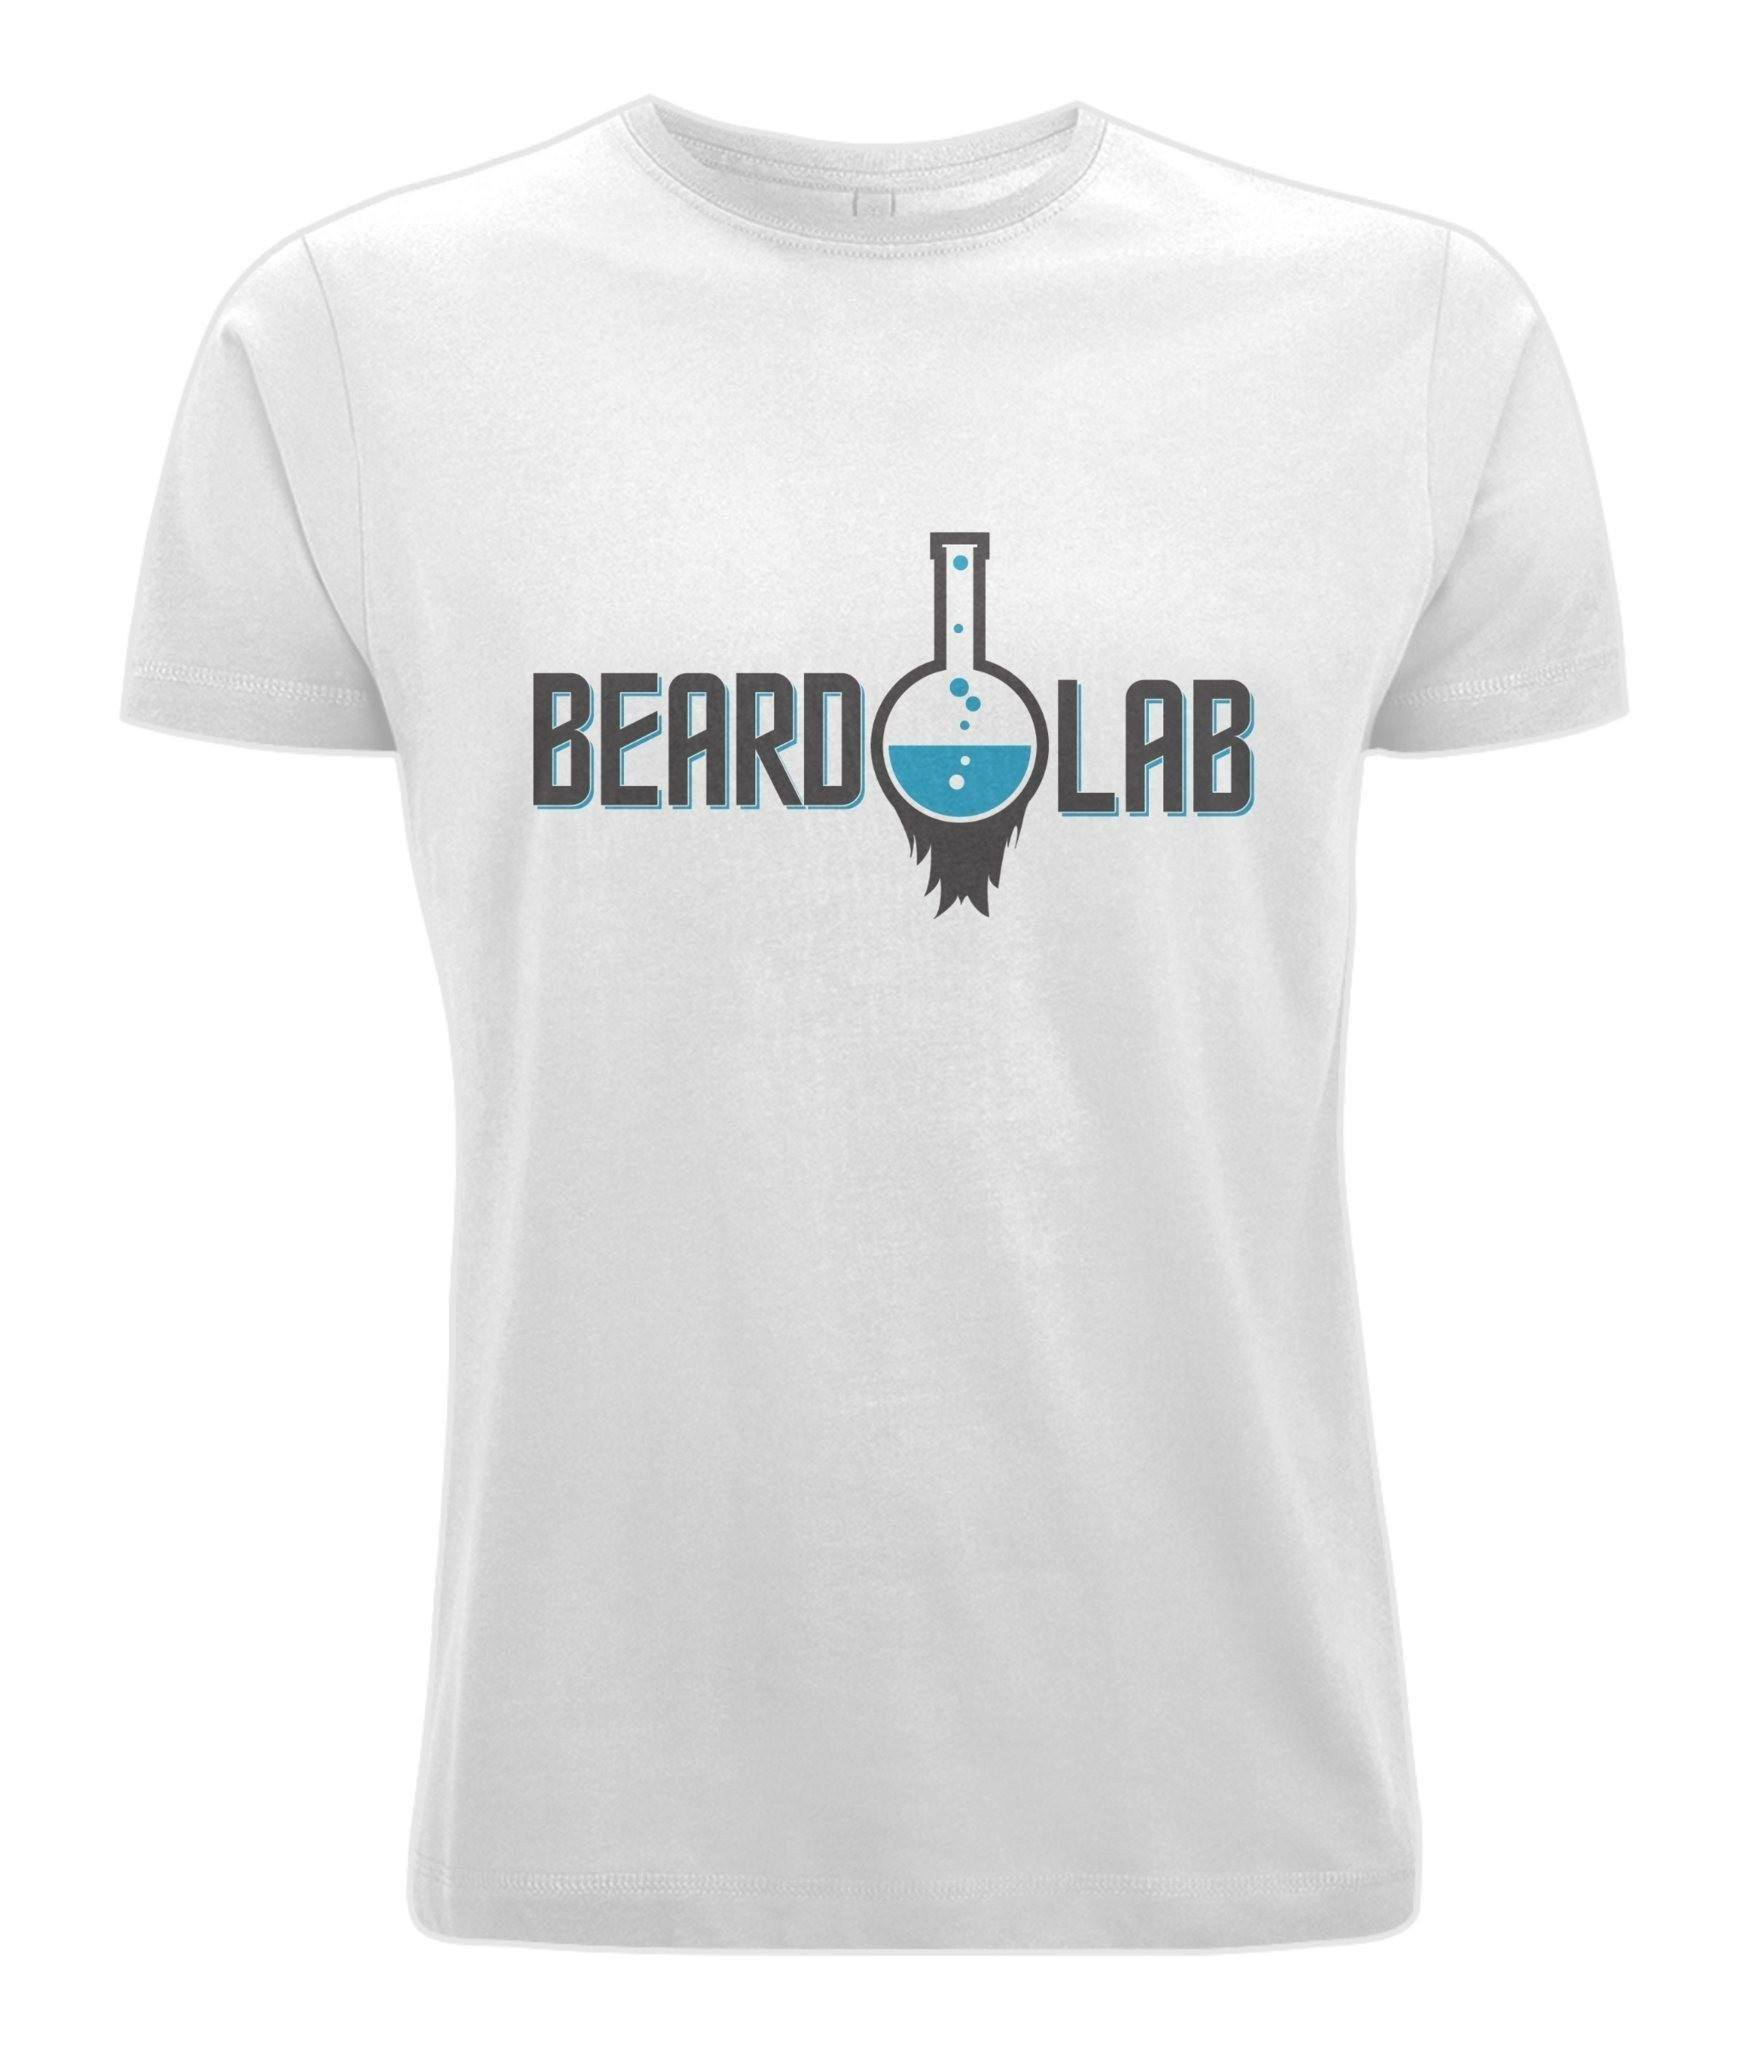 Clothing - Beard Lab Bamboo T-Shirt